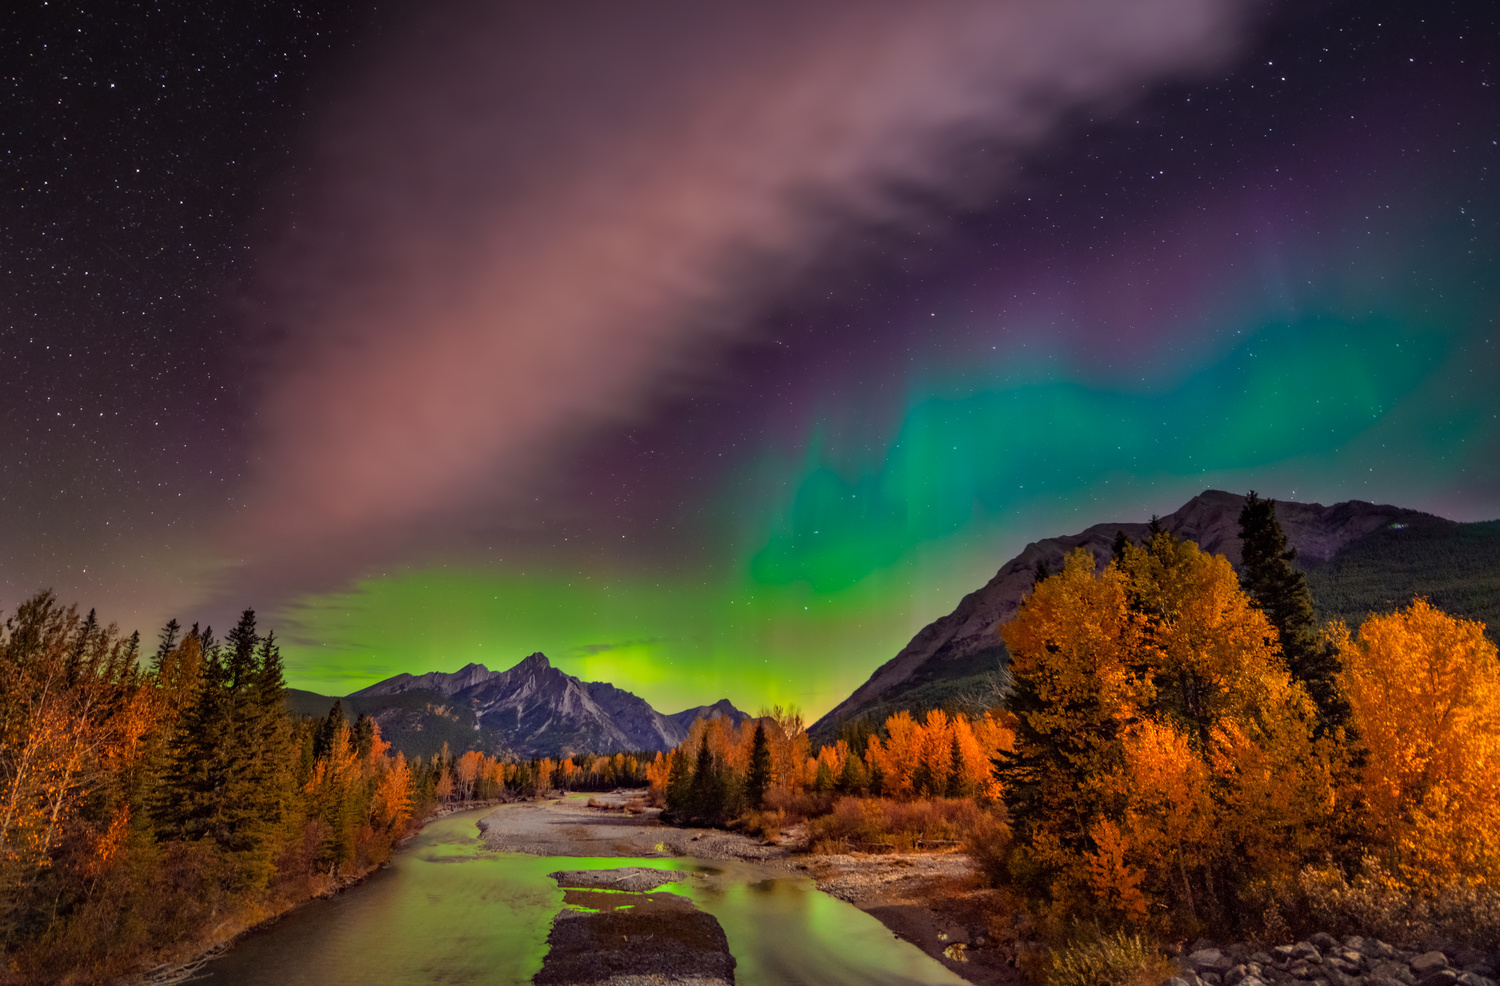 Northern Light Kananaskis by Alex Hill